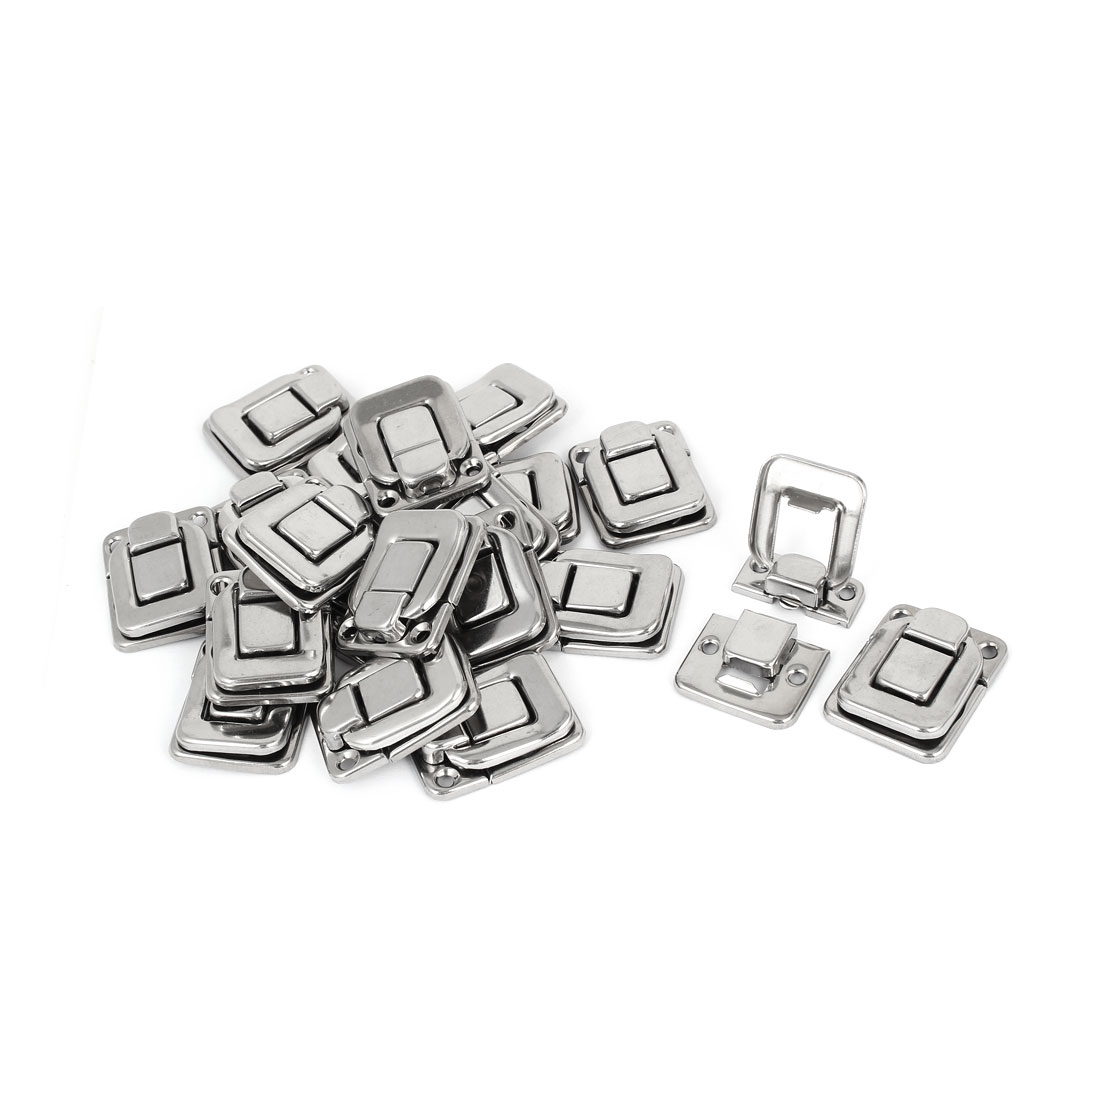 Toolbox Stainless Steel Box Toggle Latch Hasp Silver Tone 38mm Length 20pcs